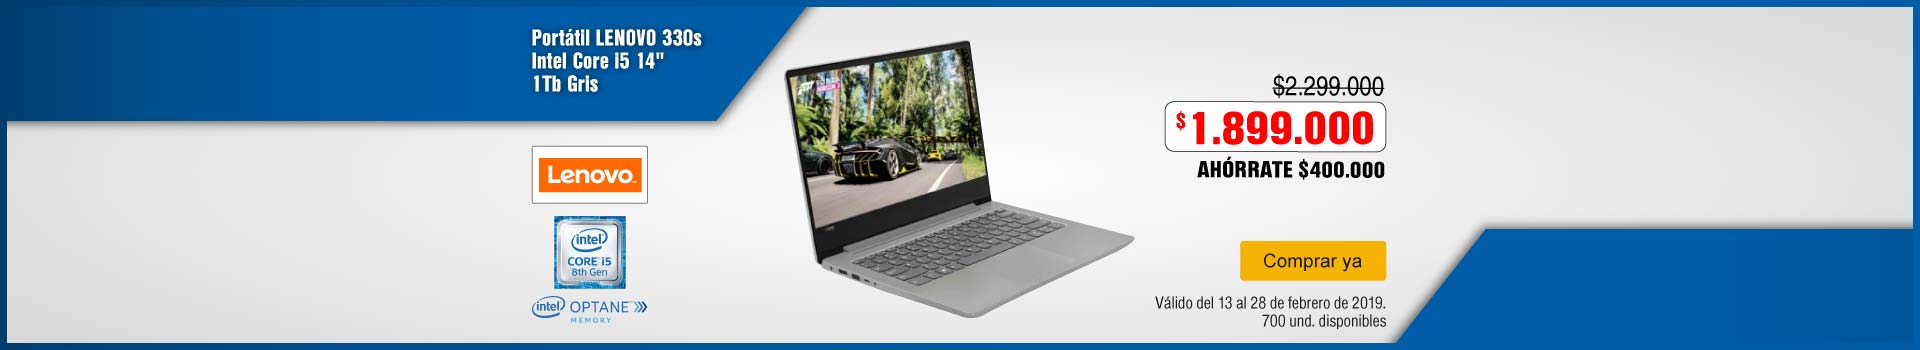 AK-KT-HIPER-1-computadores y tablets-PP---Port 14'Lenovo 330s Ci5 Opt Gr_feb20GC